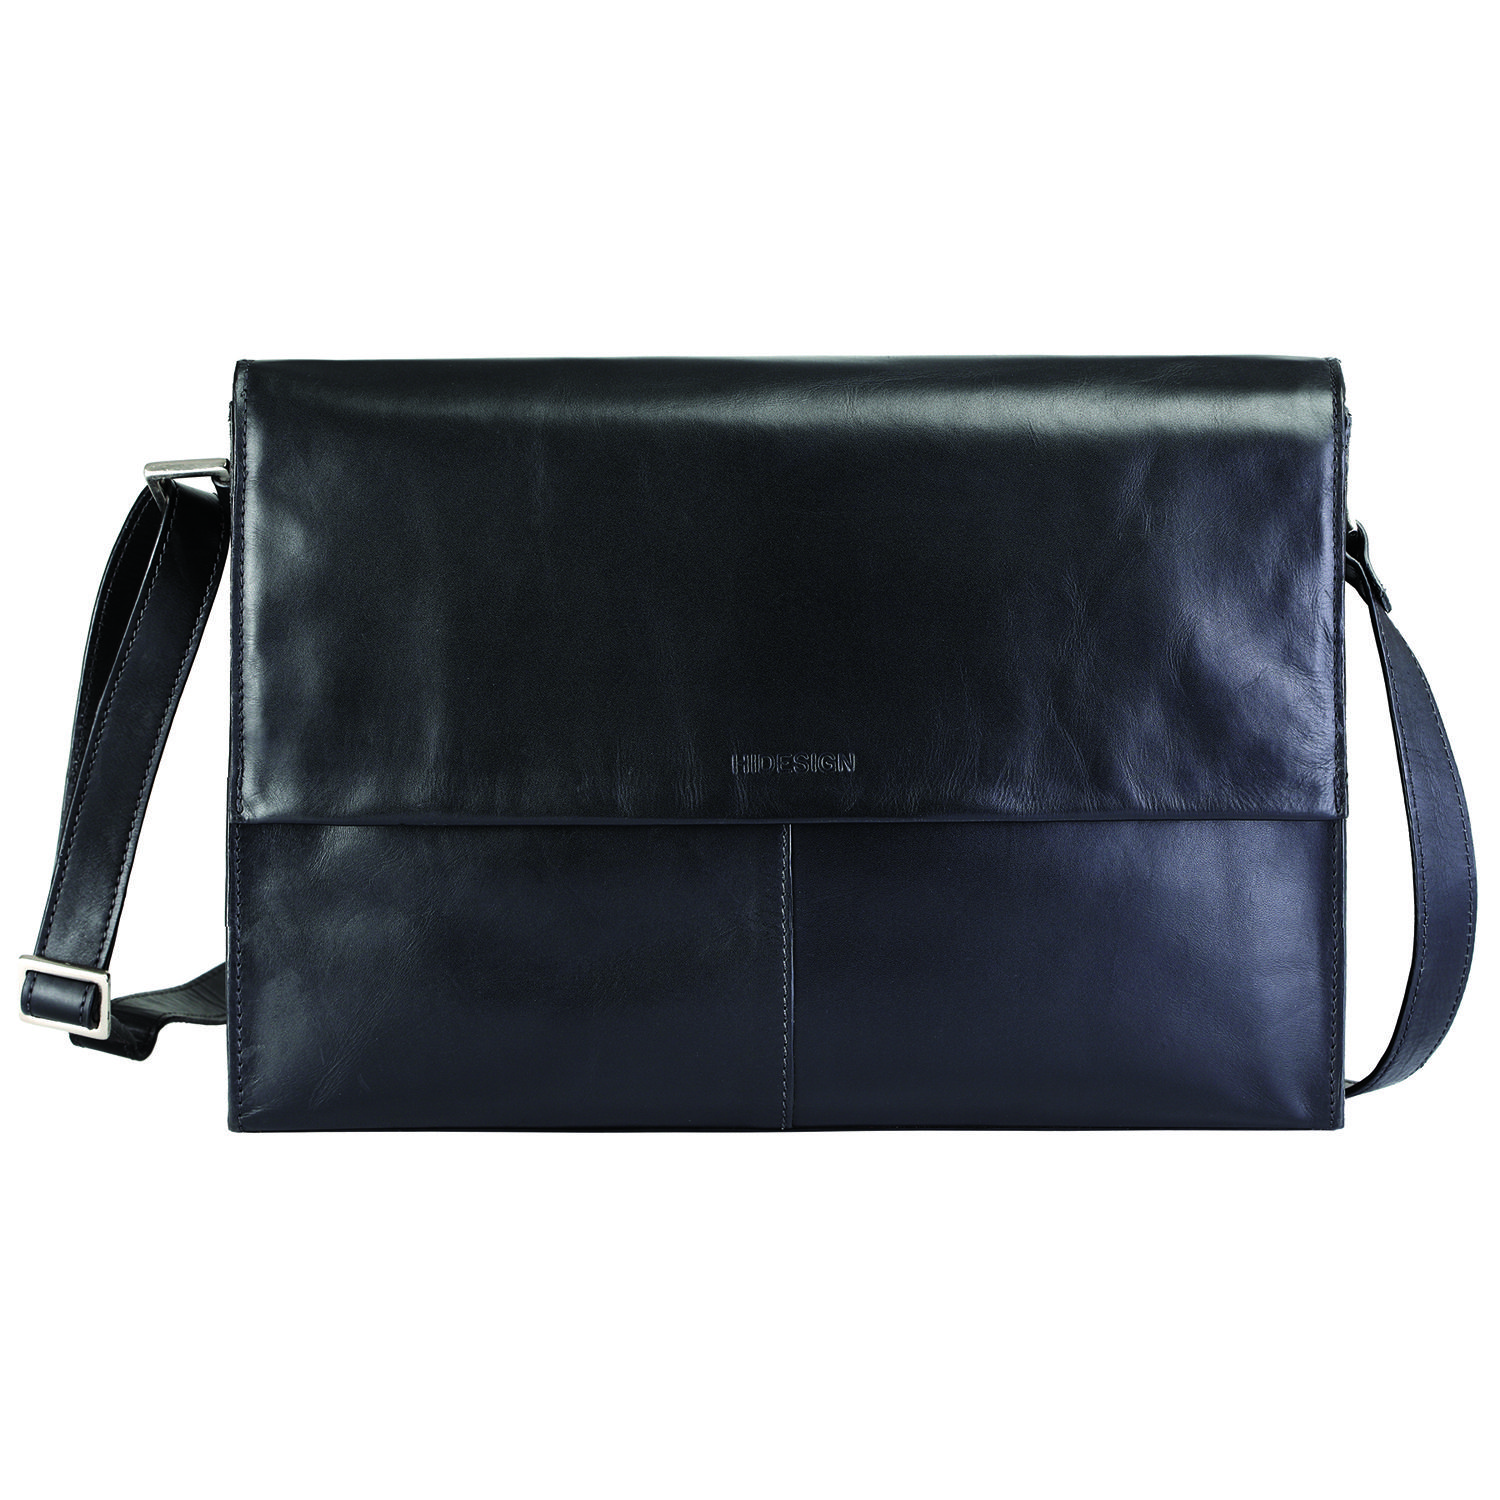 Hidesign Men's Leather Messenger Style Briefcase with Padded Laptop Sleeve